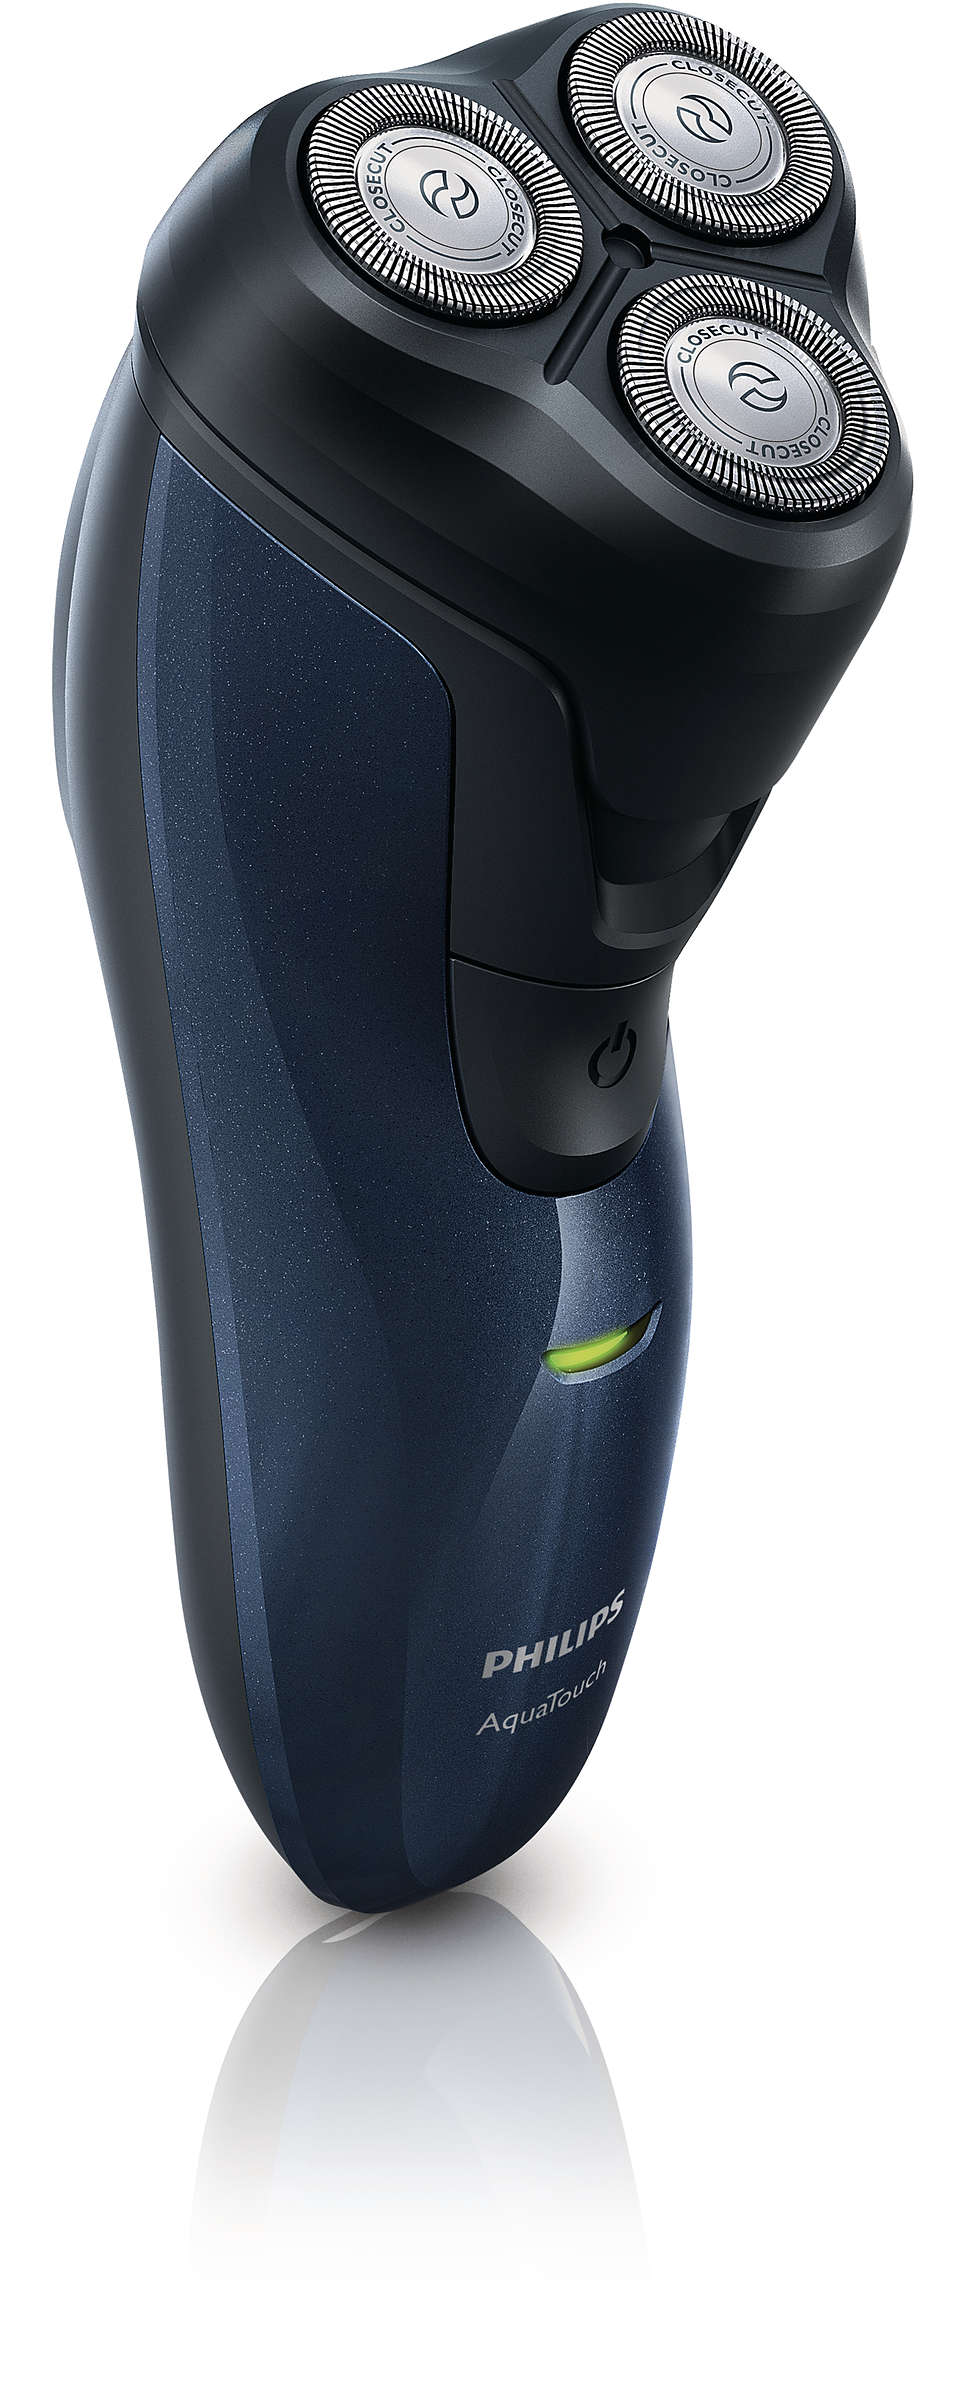 Great skin protection, smooth shave